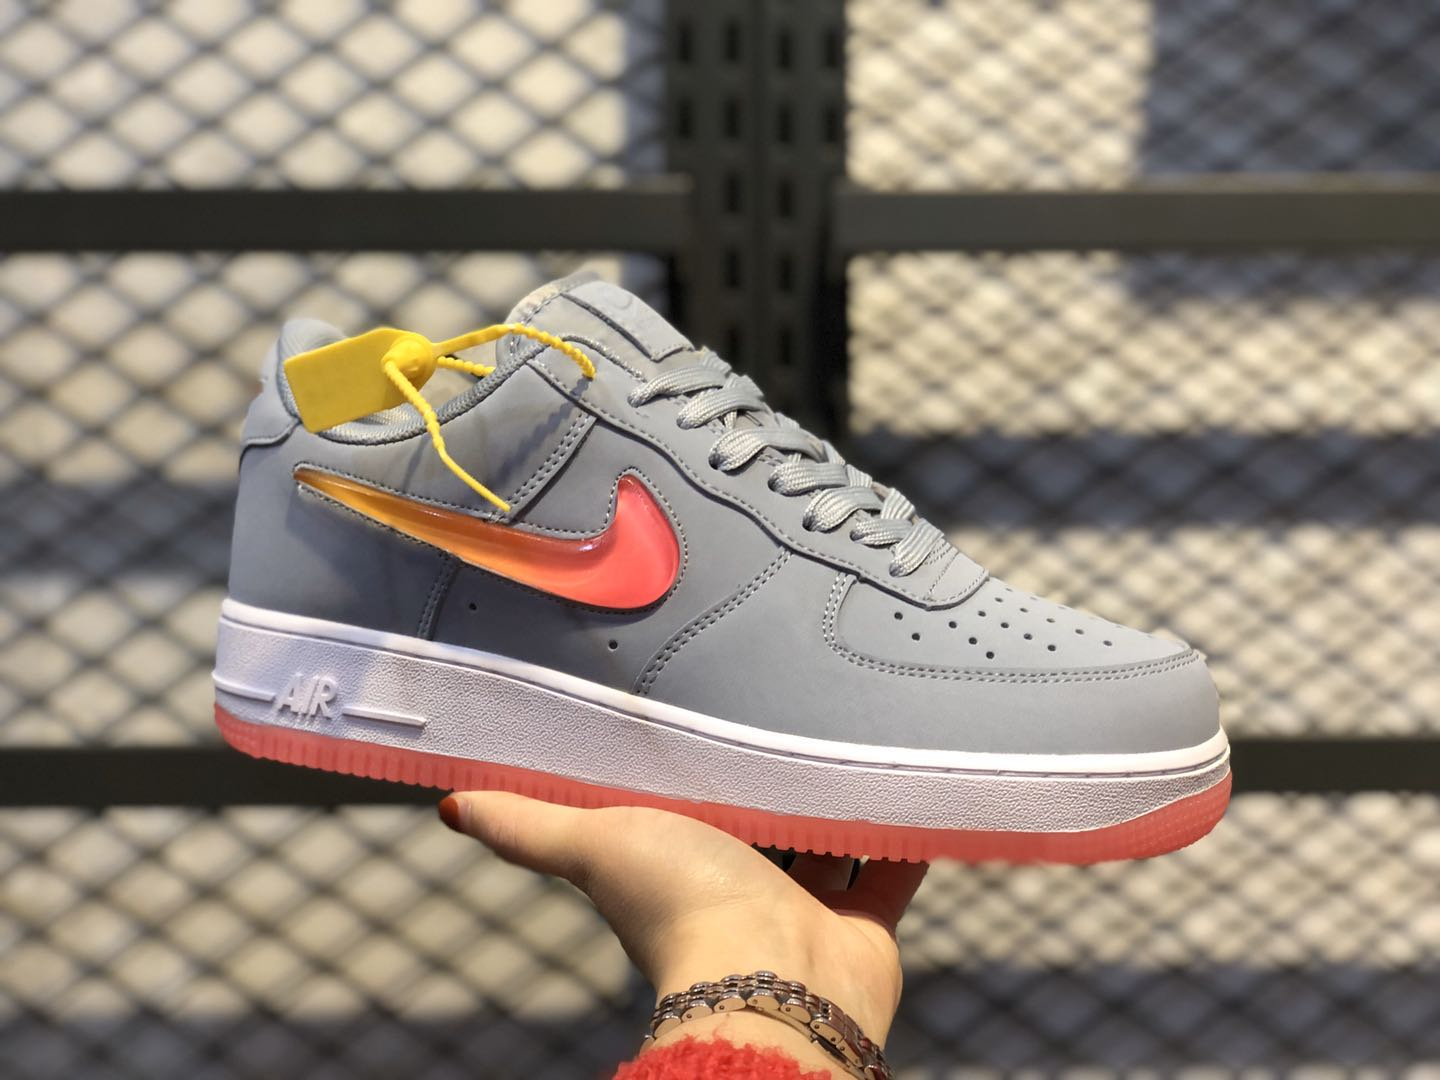 Nike Air Force 1 Jewel Obsidian Mist/Hot Punch-University Red AT4143-400